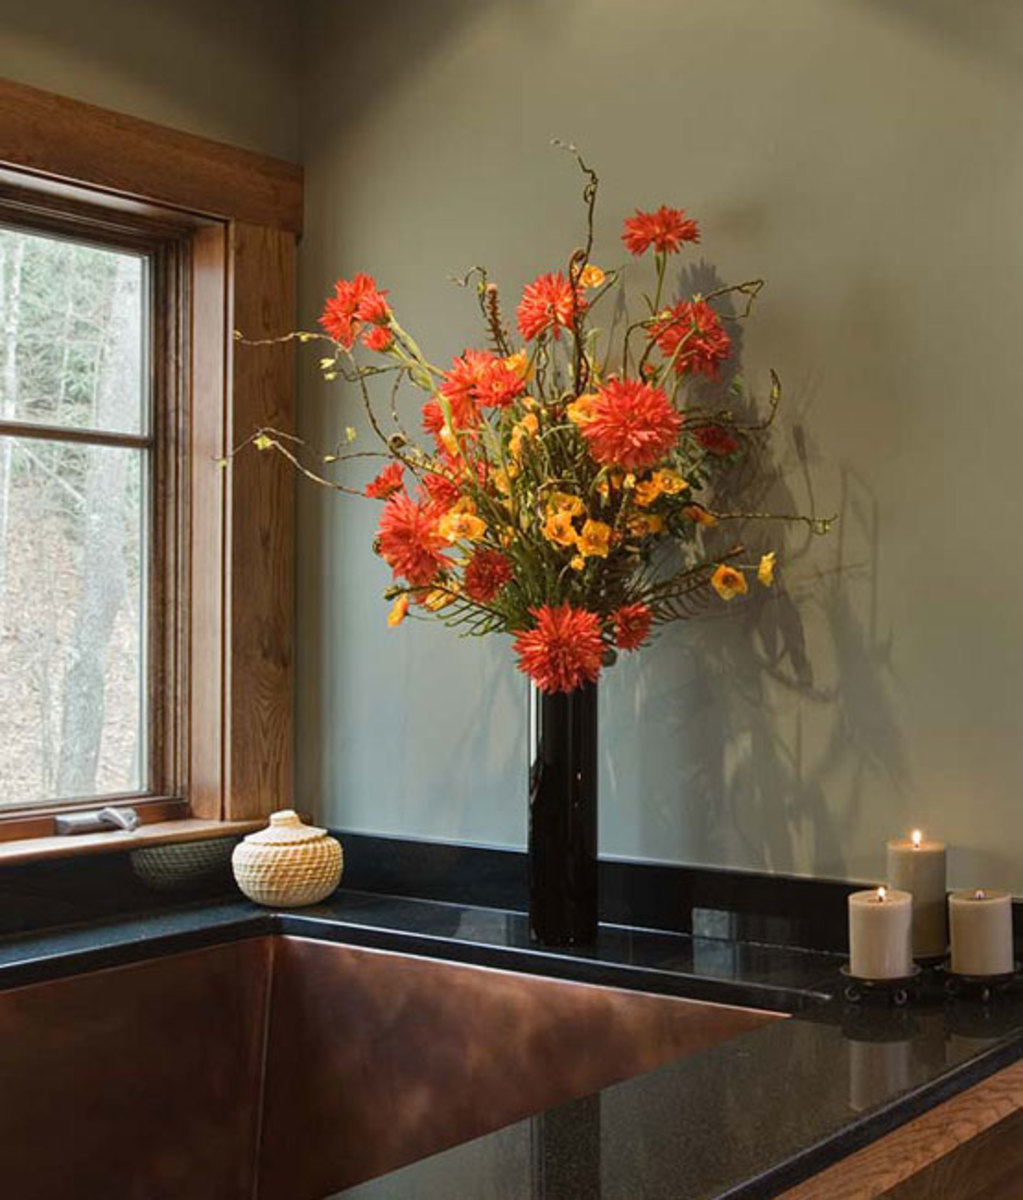 Contemporary artisanry in the master bath.